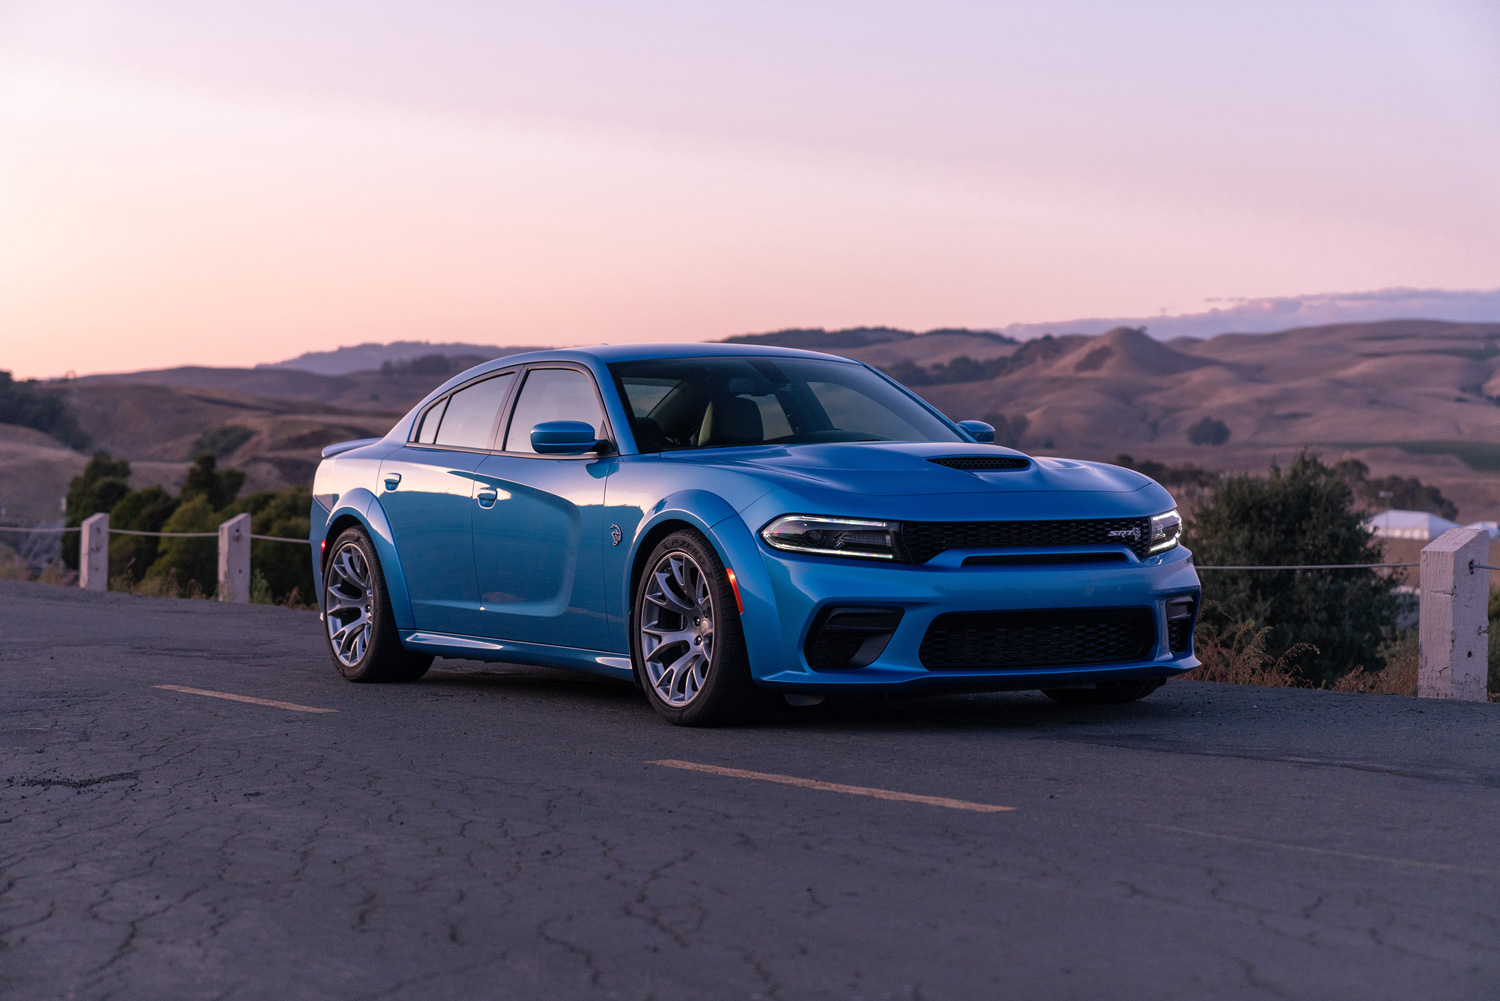 16 Mopar Muscle Car Facts Every Enthusiast Should Know Hagerty Media